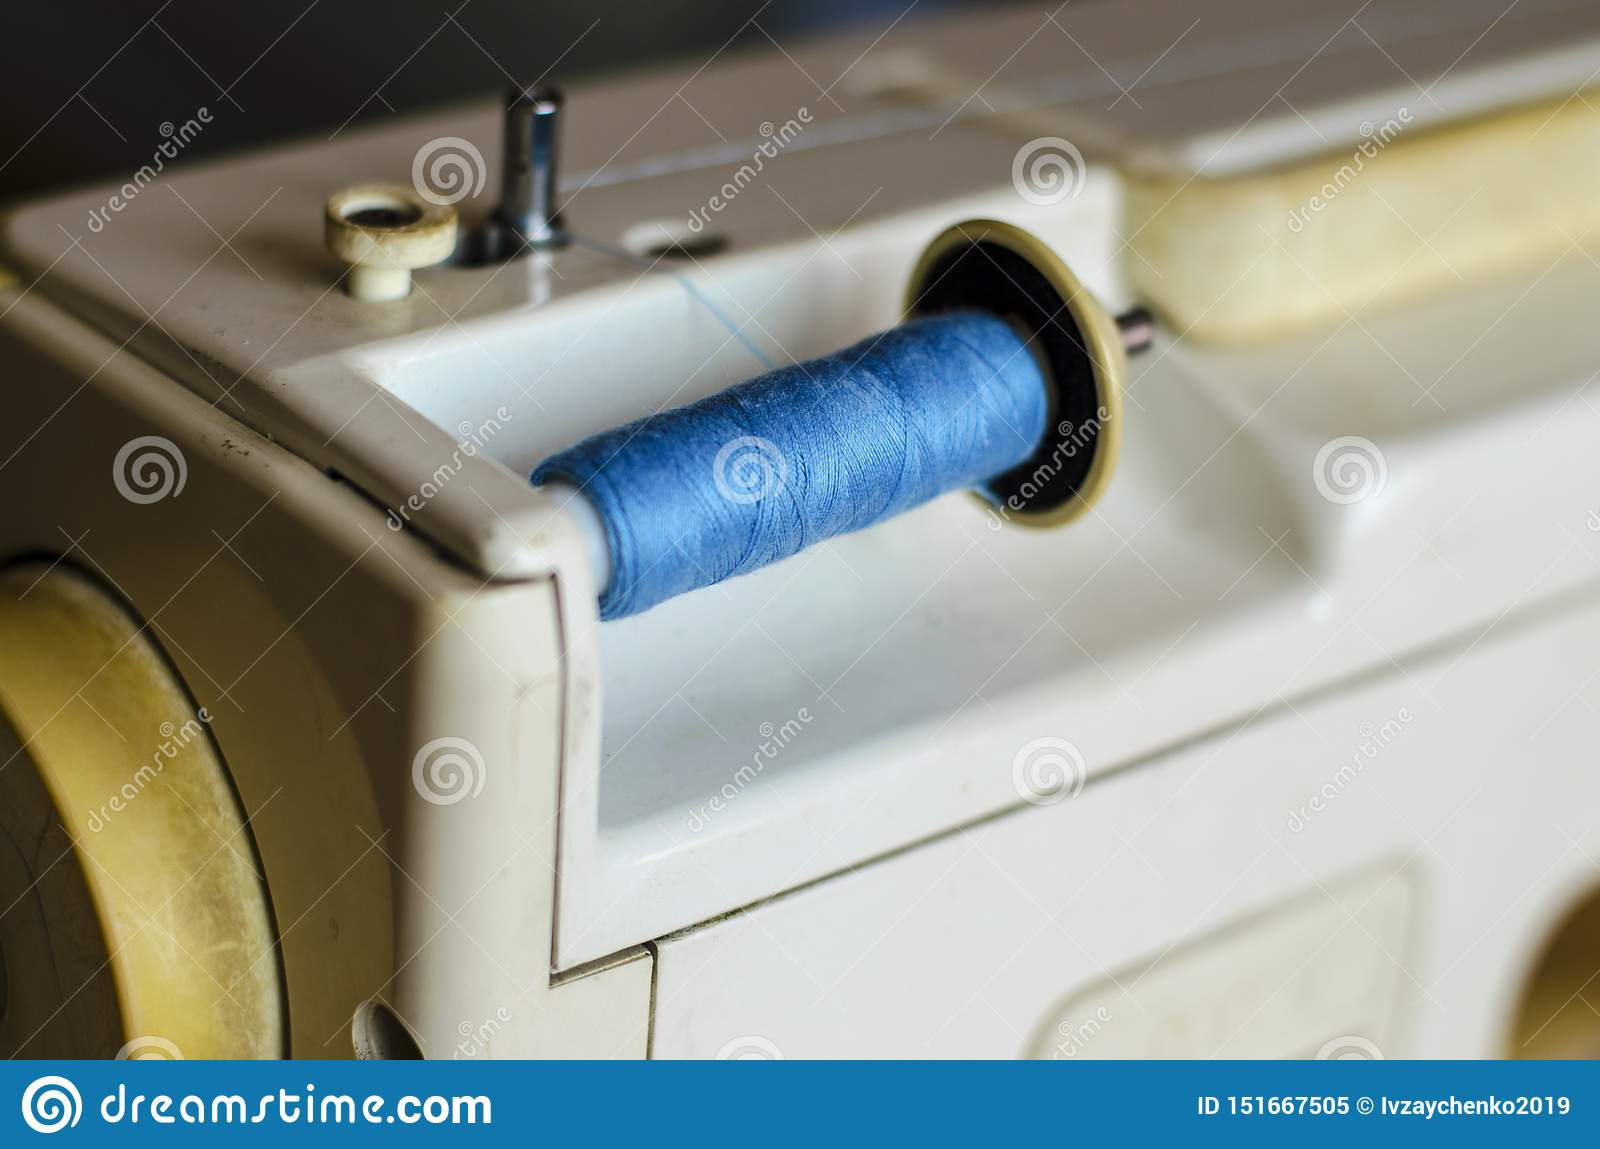 Sewing machine. Frontal view, the upper thread is filled for work